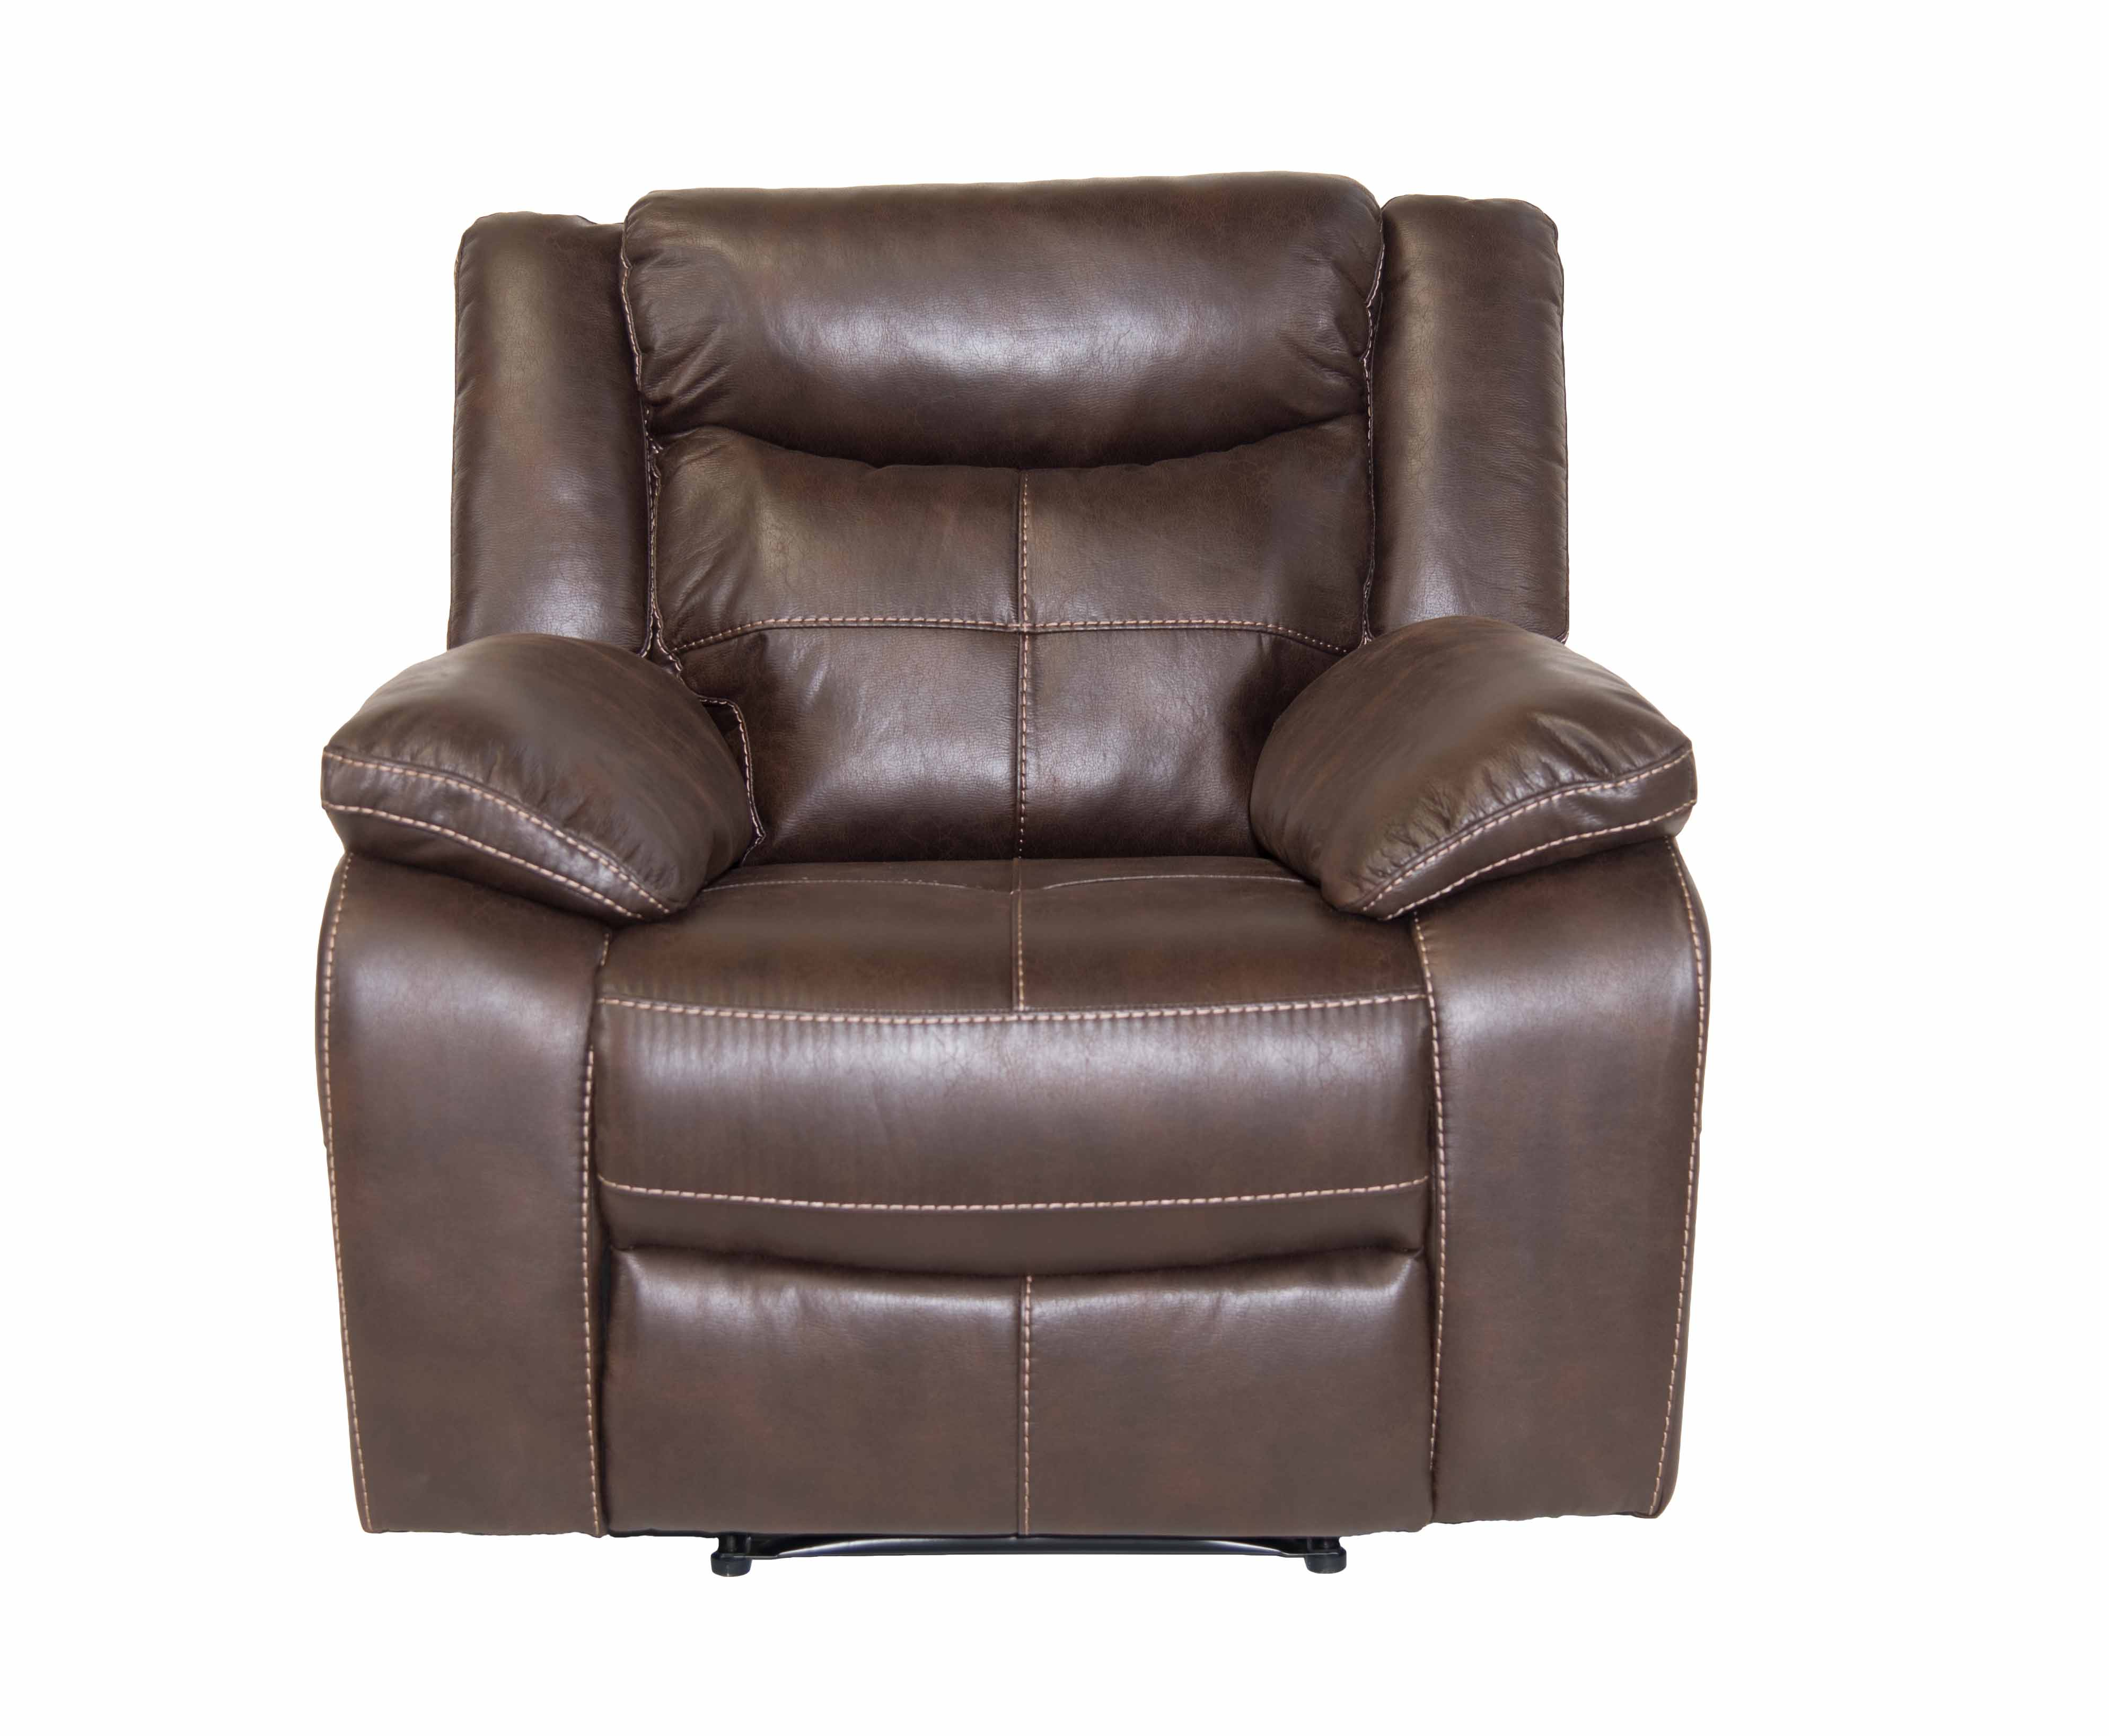 Recliner Lounge Zcf001 Recliner Lounge Suite Furniture Liquidation Warehouse